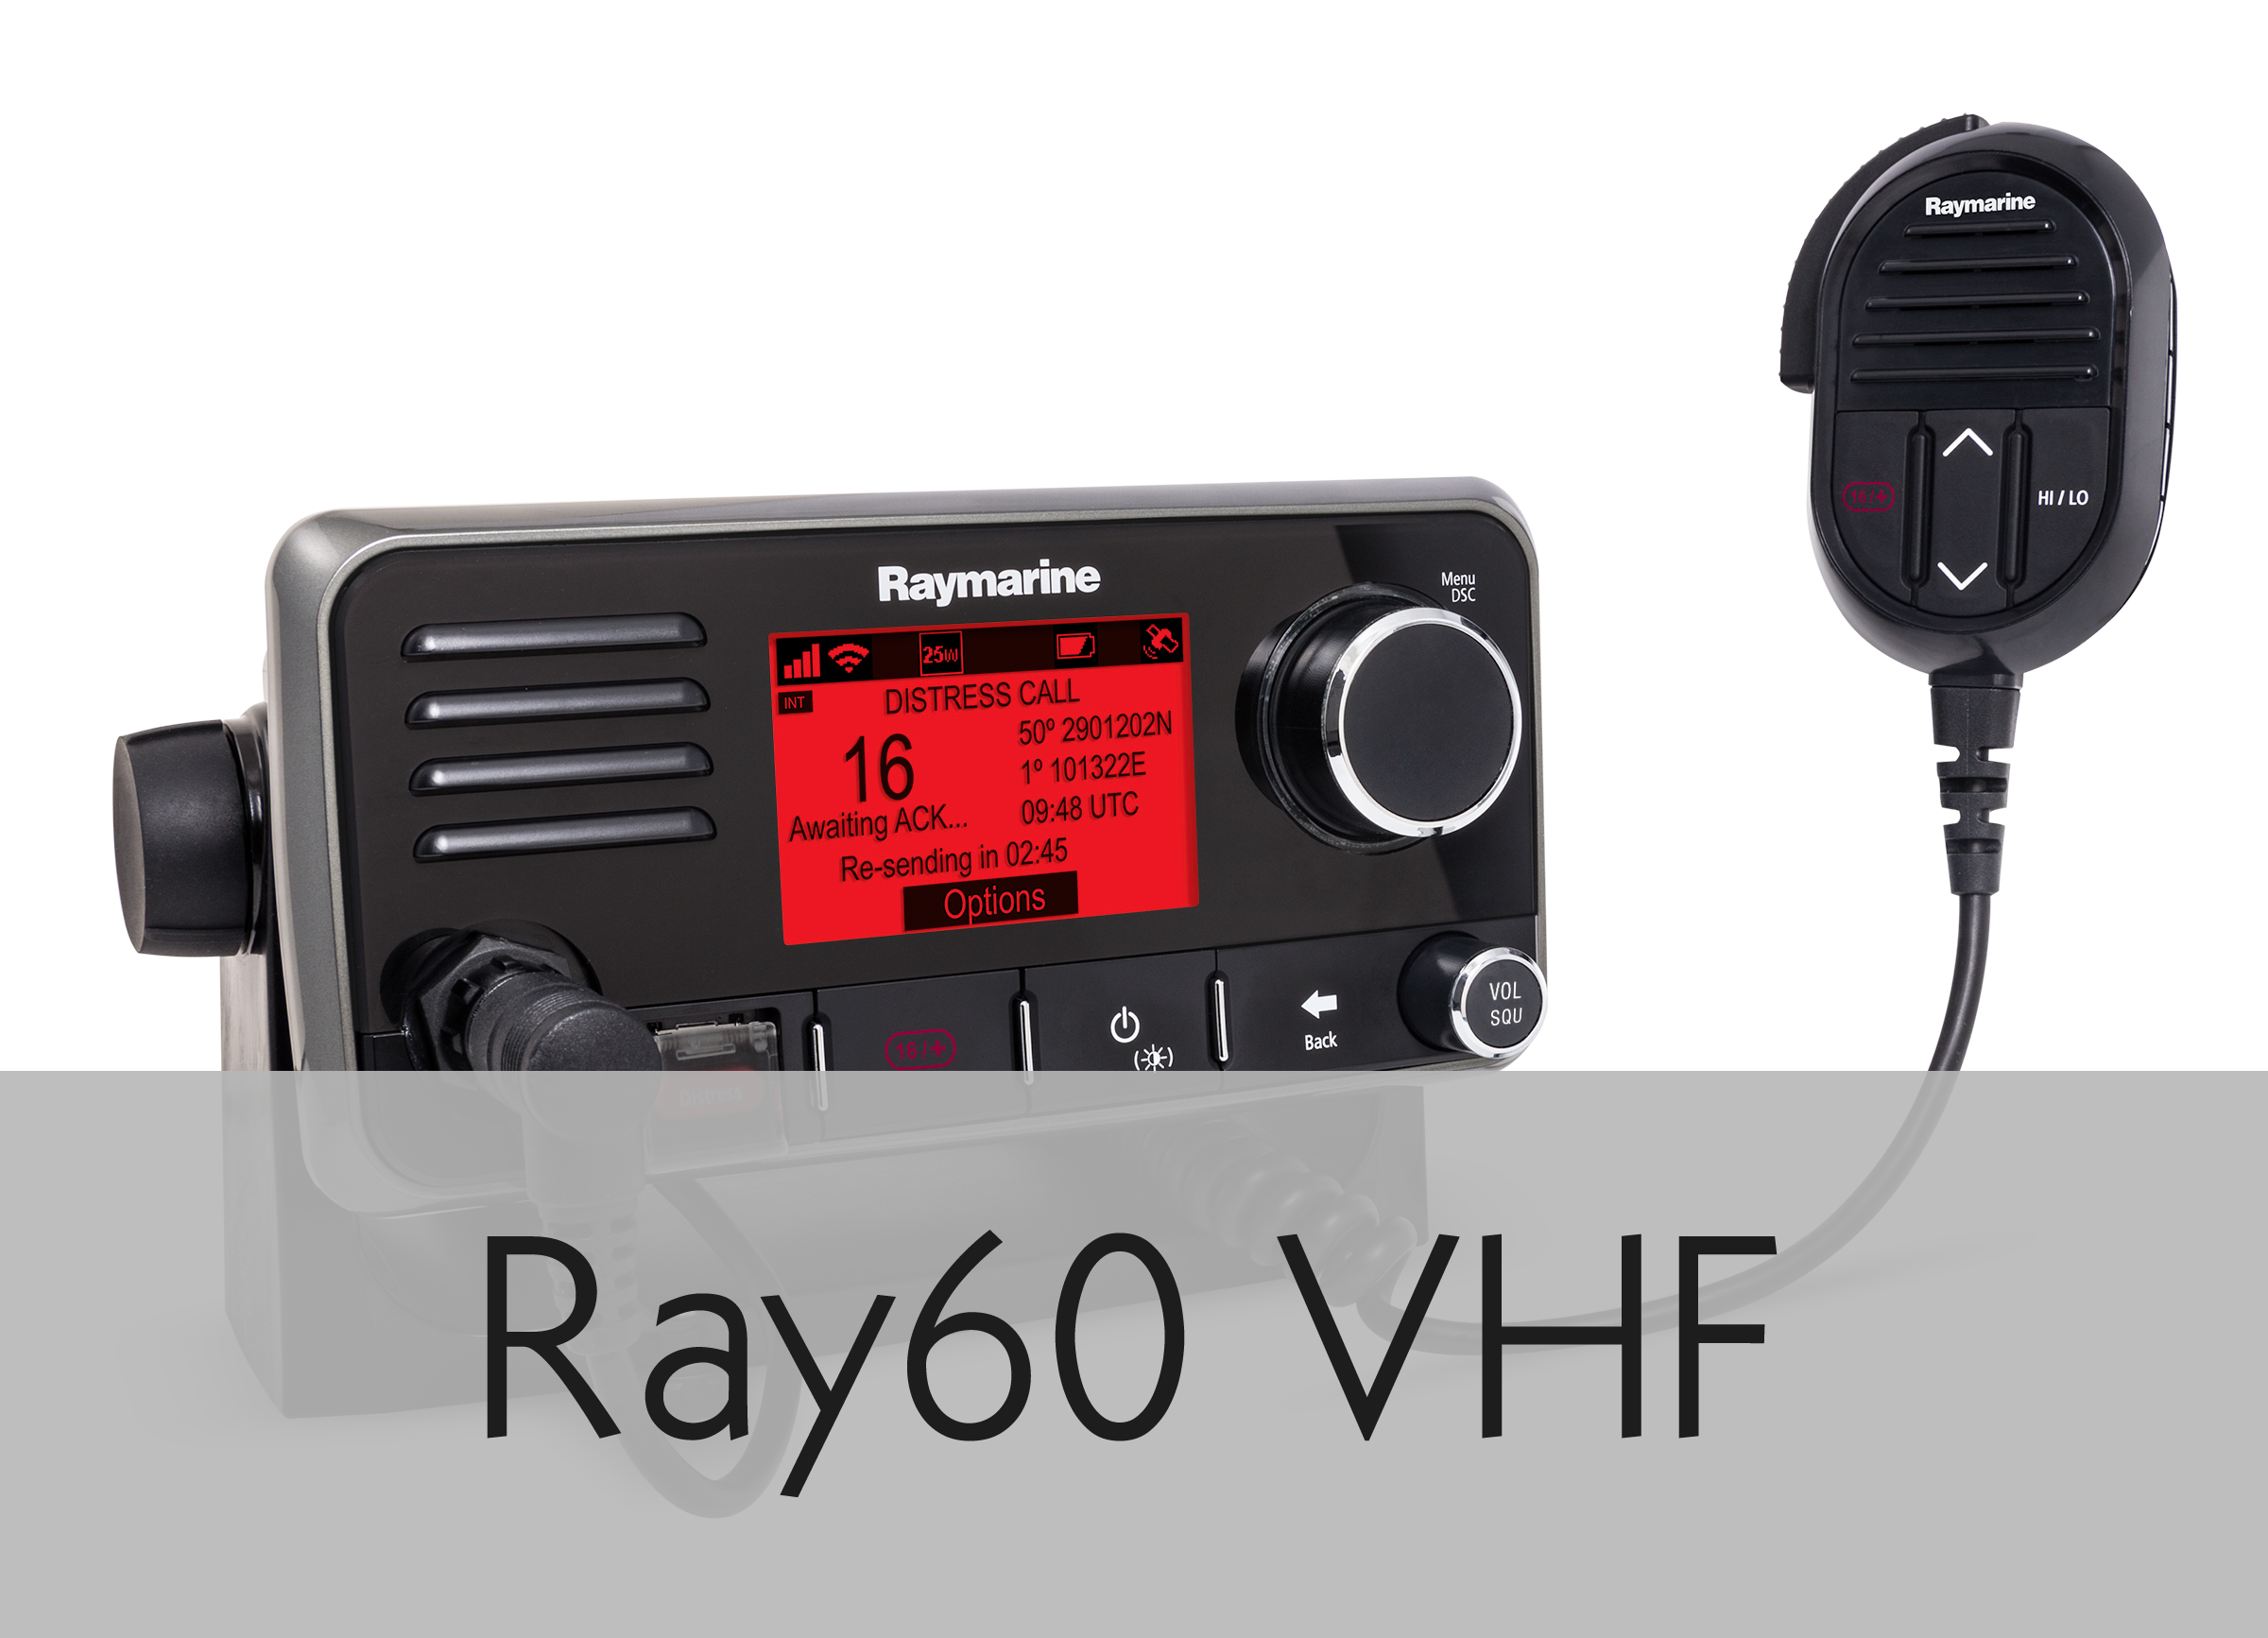 ray60 vhf find out more